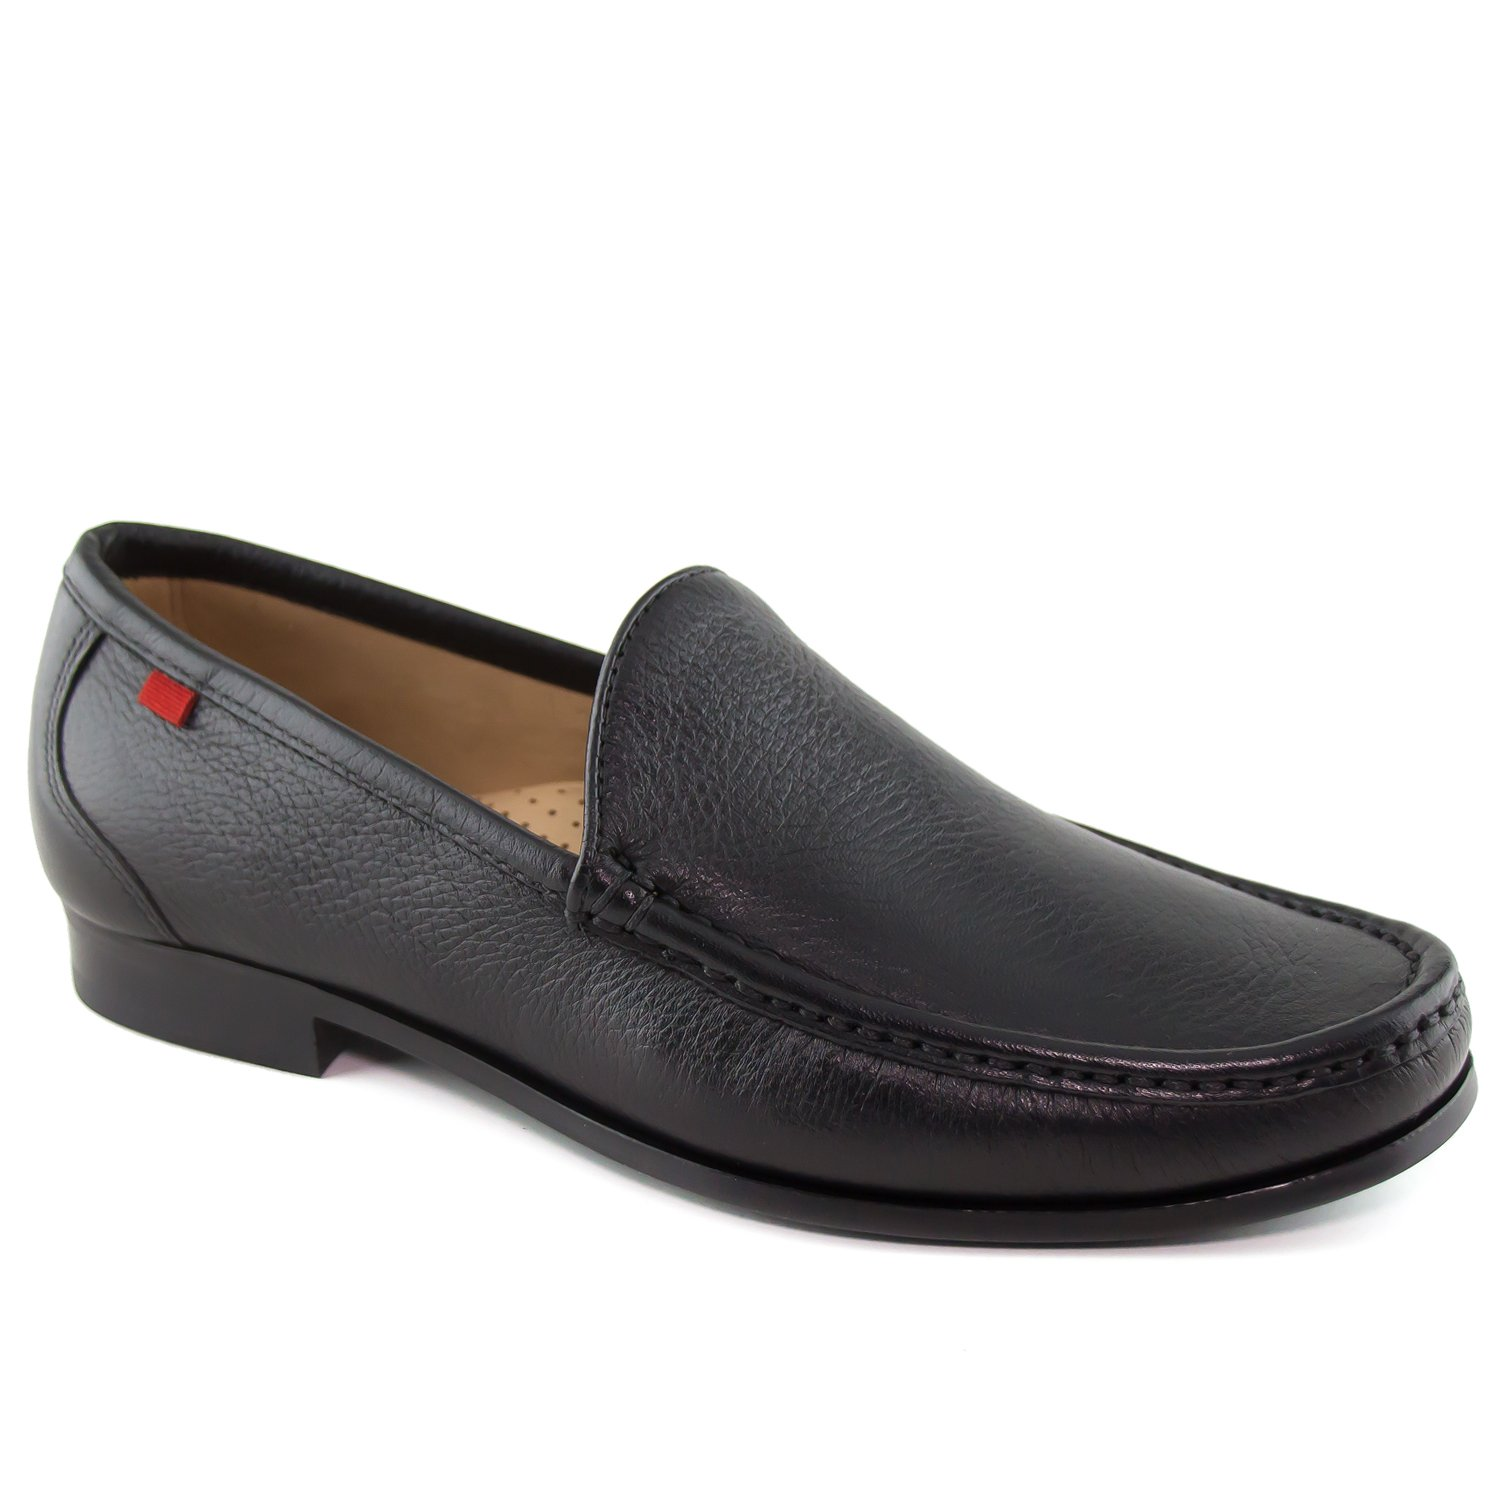 Mens Genuine Leather Made In Brazil Broadway Square Venetian Black Grainy Loafer Marc Joseph NY Fashion Shoes 10